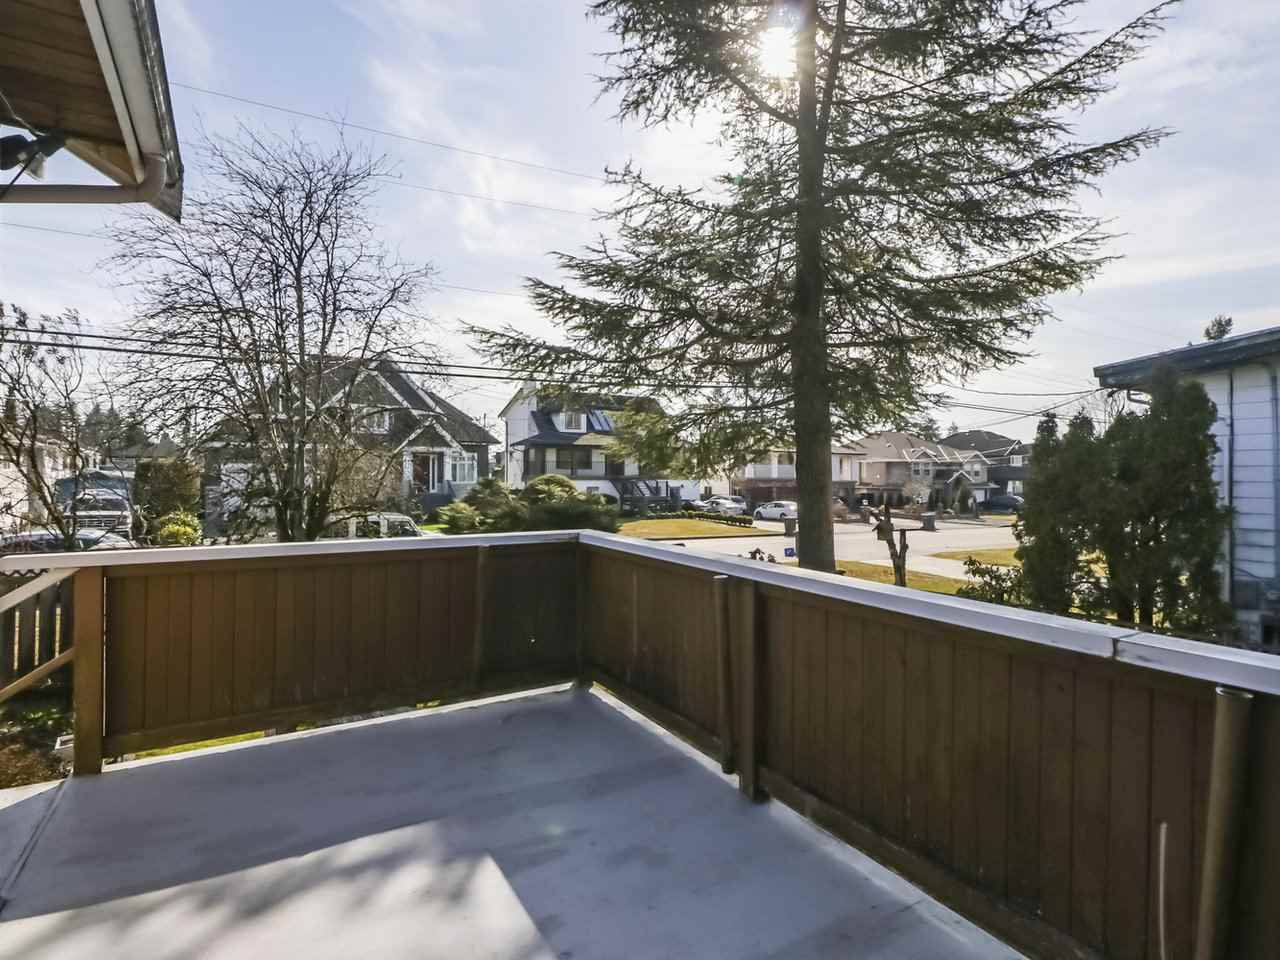 Photo 10: Photos: 730 SCHOOLHOUSE Street in Coquitlam: Central Coquitlam House for sale : MLS®# R2446516